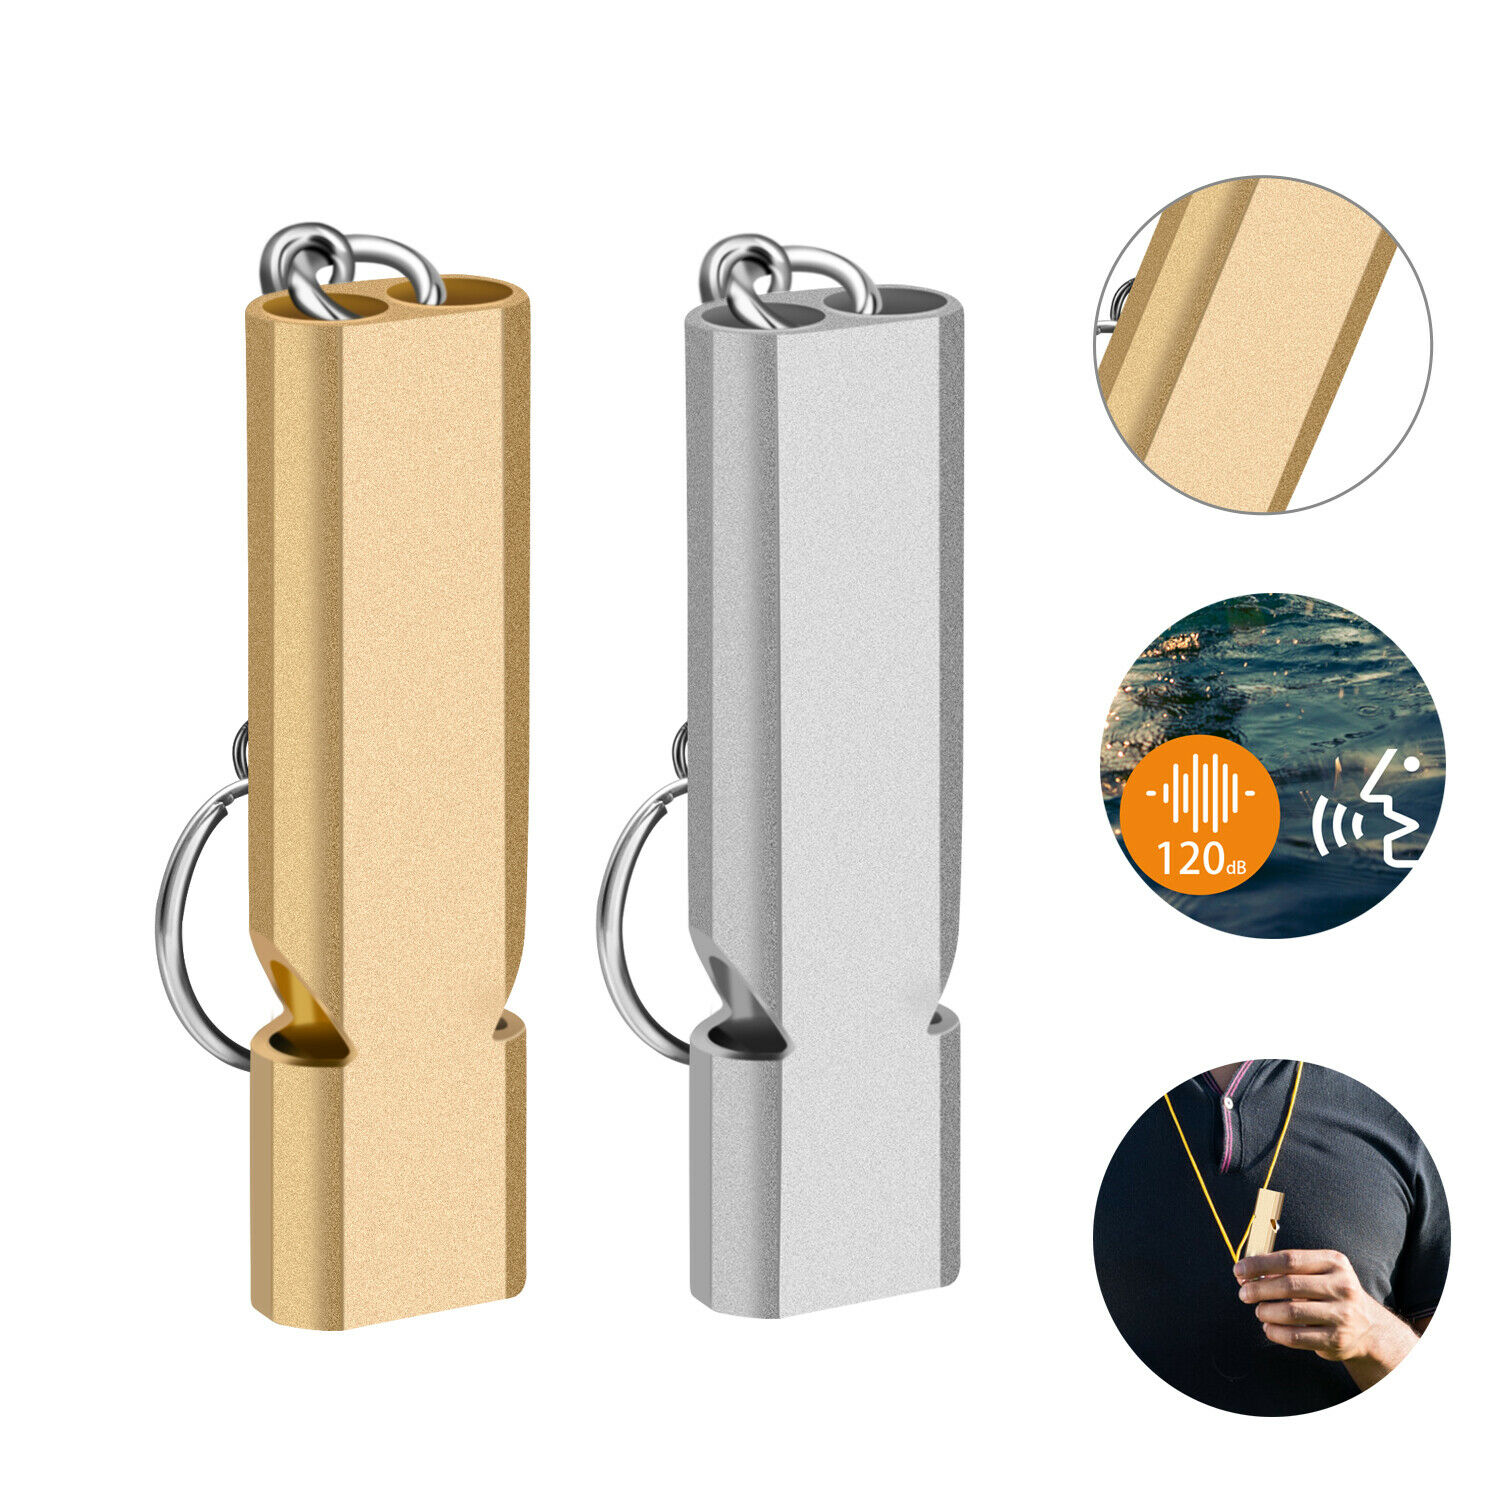 120db Aluminum Loud Emergency Survival SOS Whistle Camping Hiking Key Outdoor US Camping & Hiking